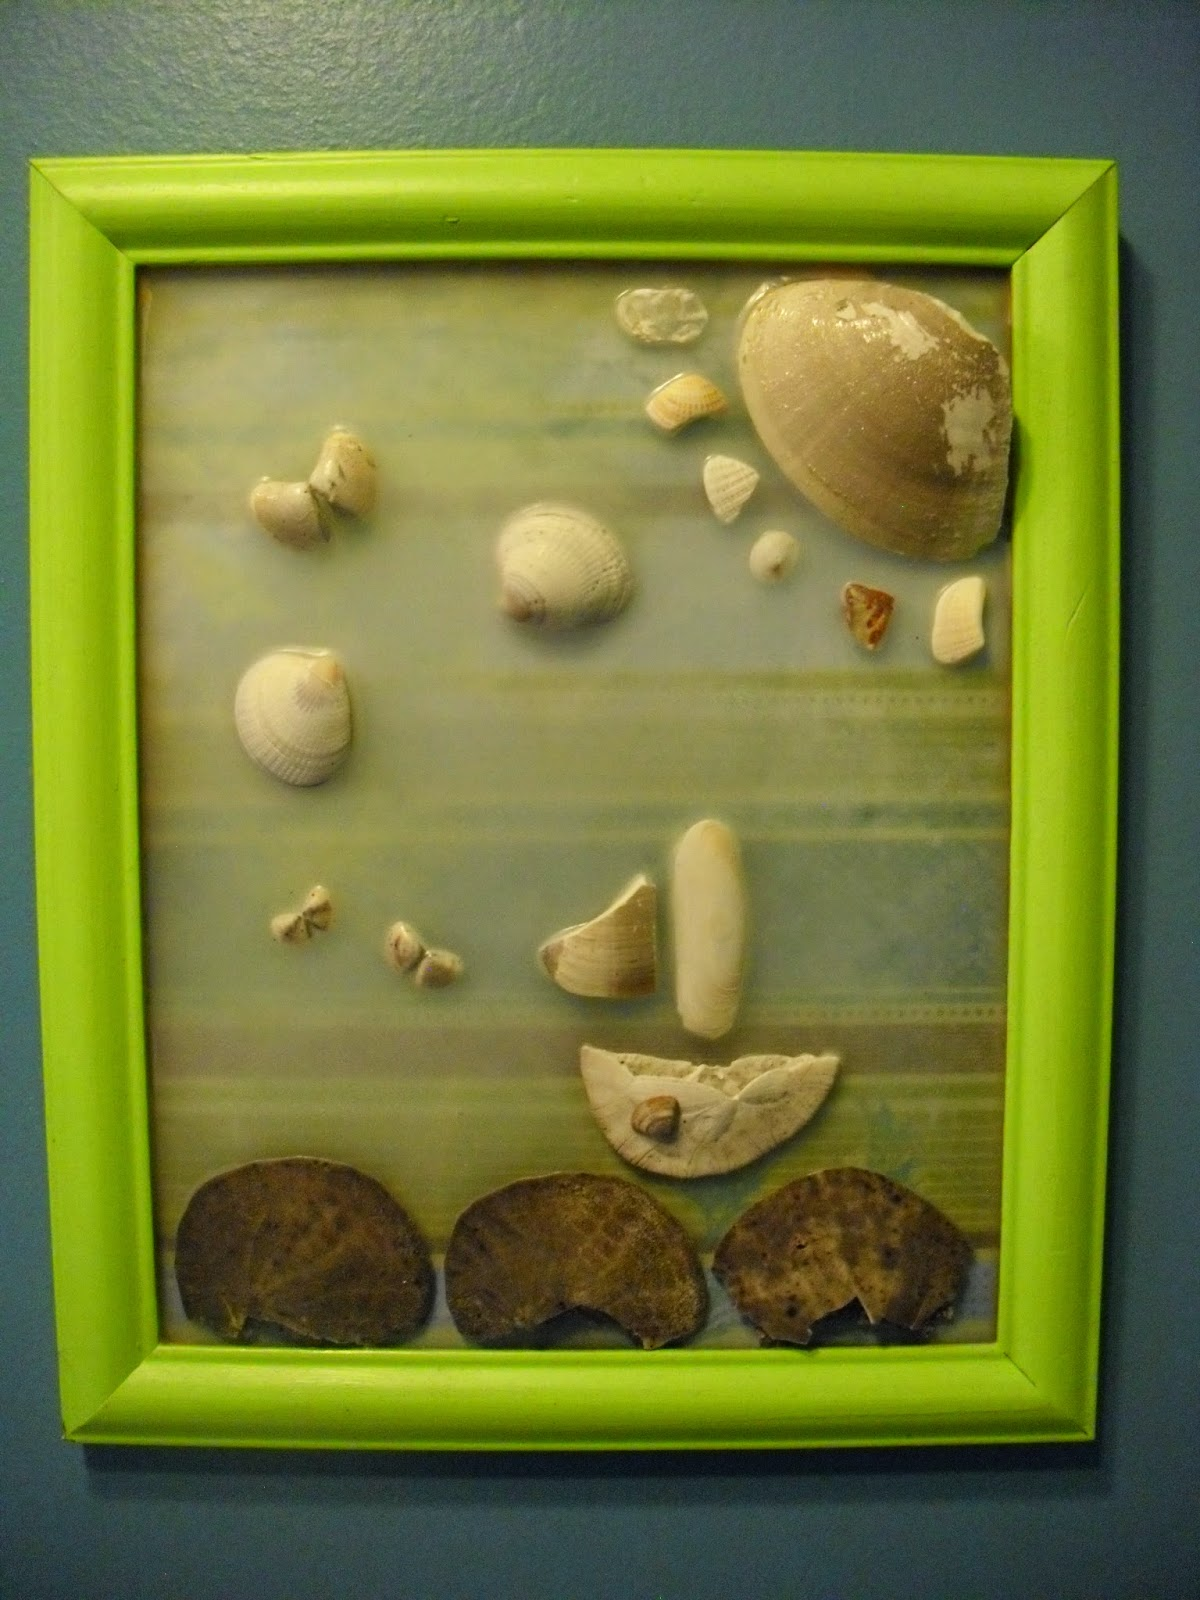 MixingItUp Create Pictures With Sea Shells - Boat